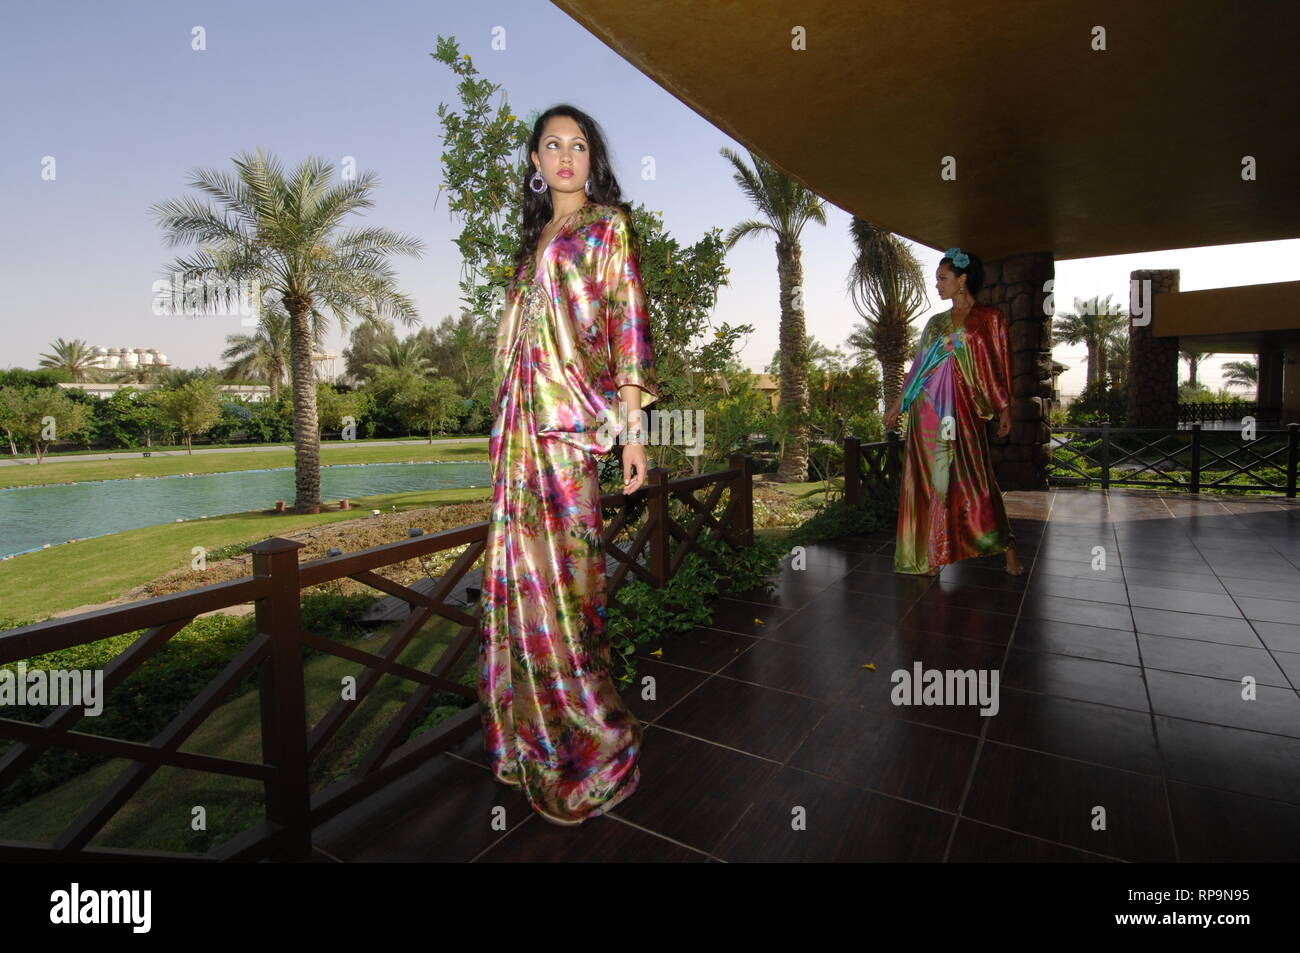 Girls of Asian nationality dressed in bright summer dresses are walking in the summer garden of a country house. - Stock Image